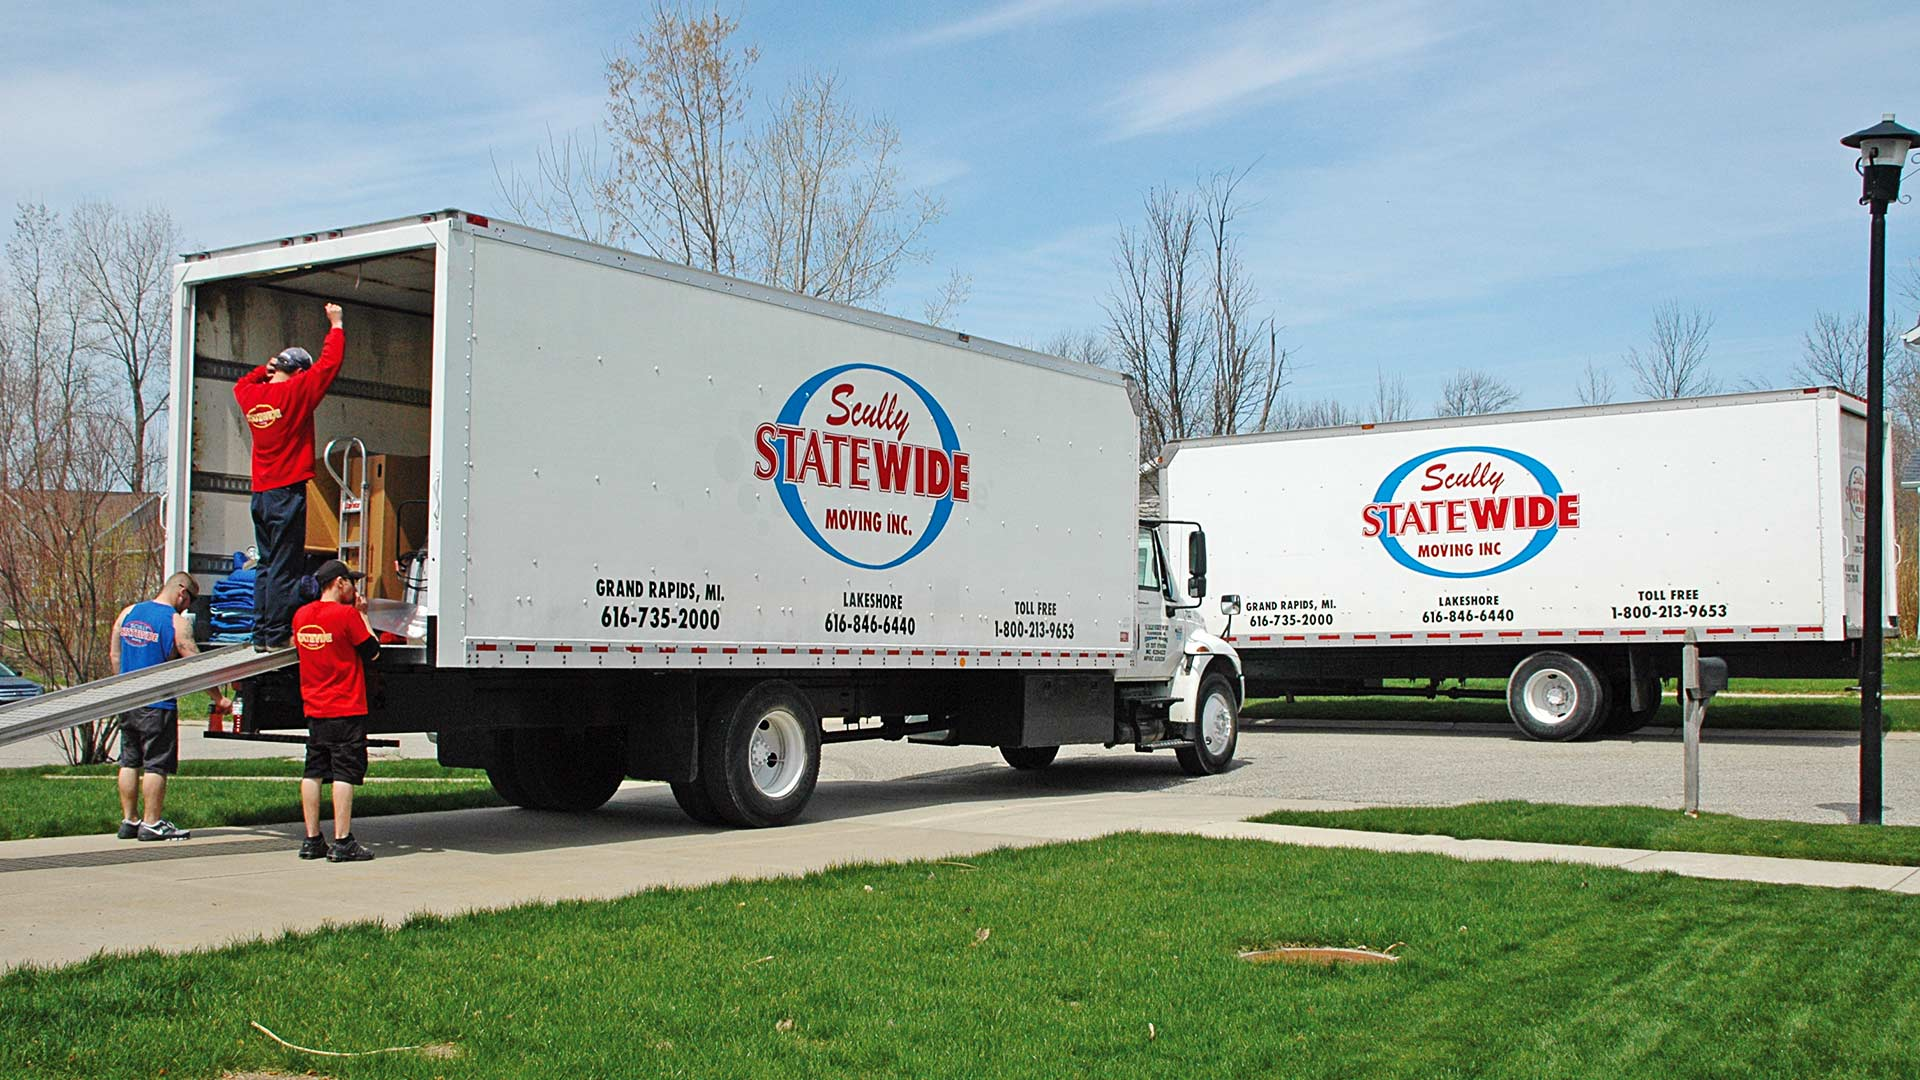 Scully Statewide Moving - Grand Rapids